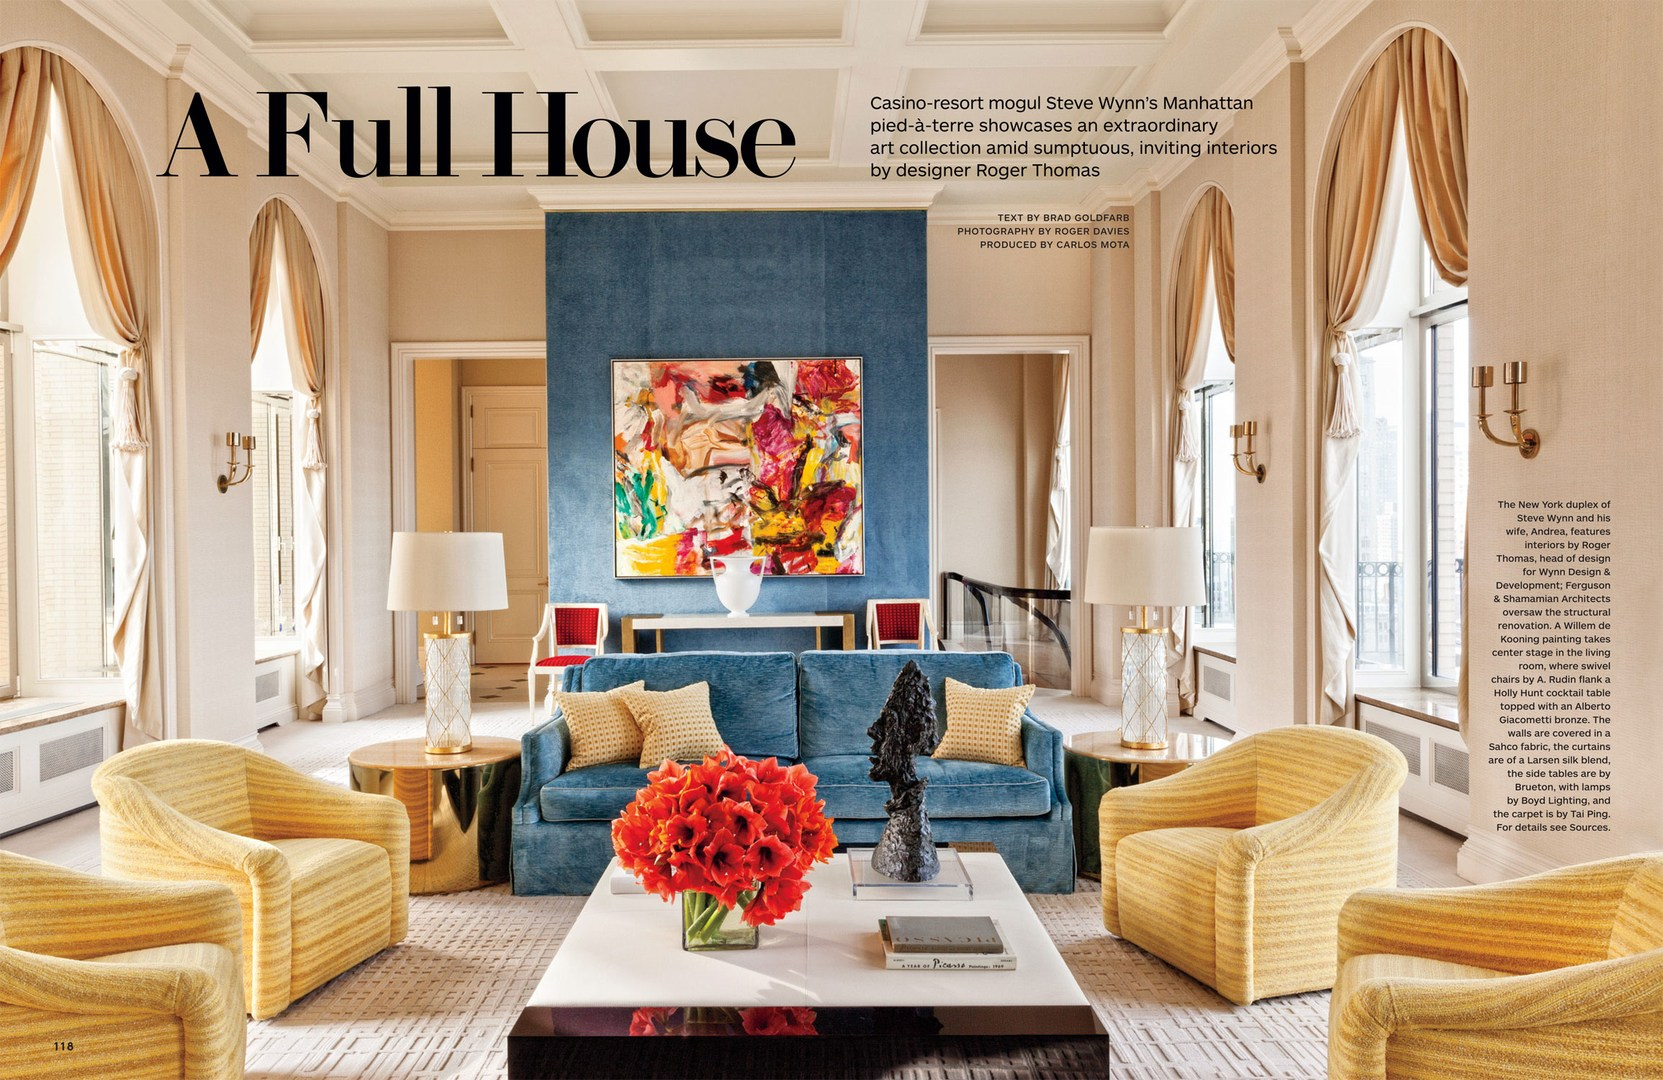 Full House Architectural Digest March 2014 on leopard and red living room ideas